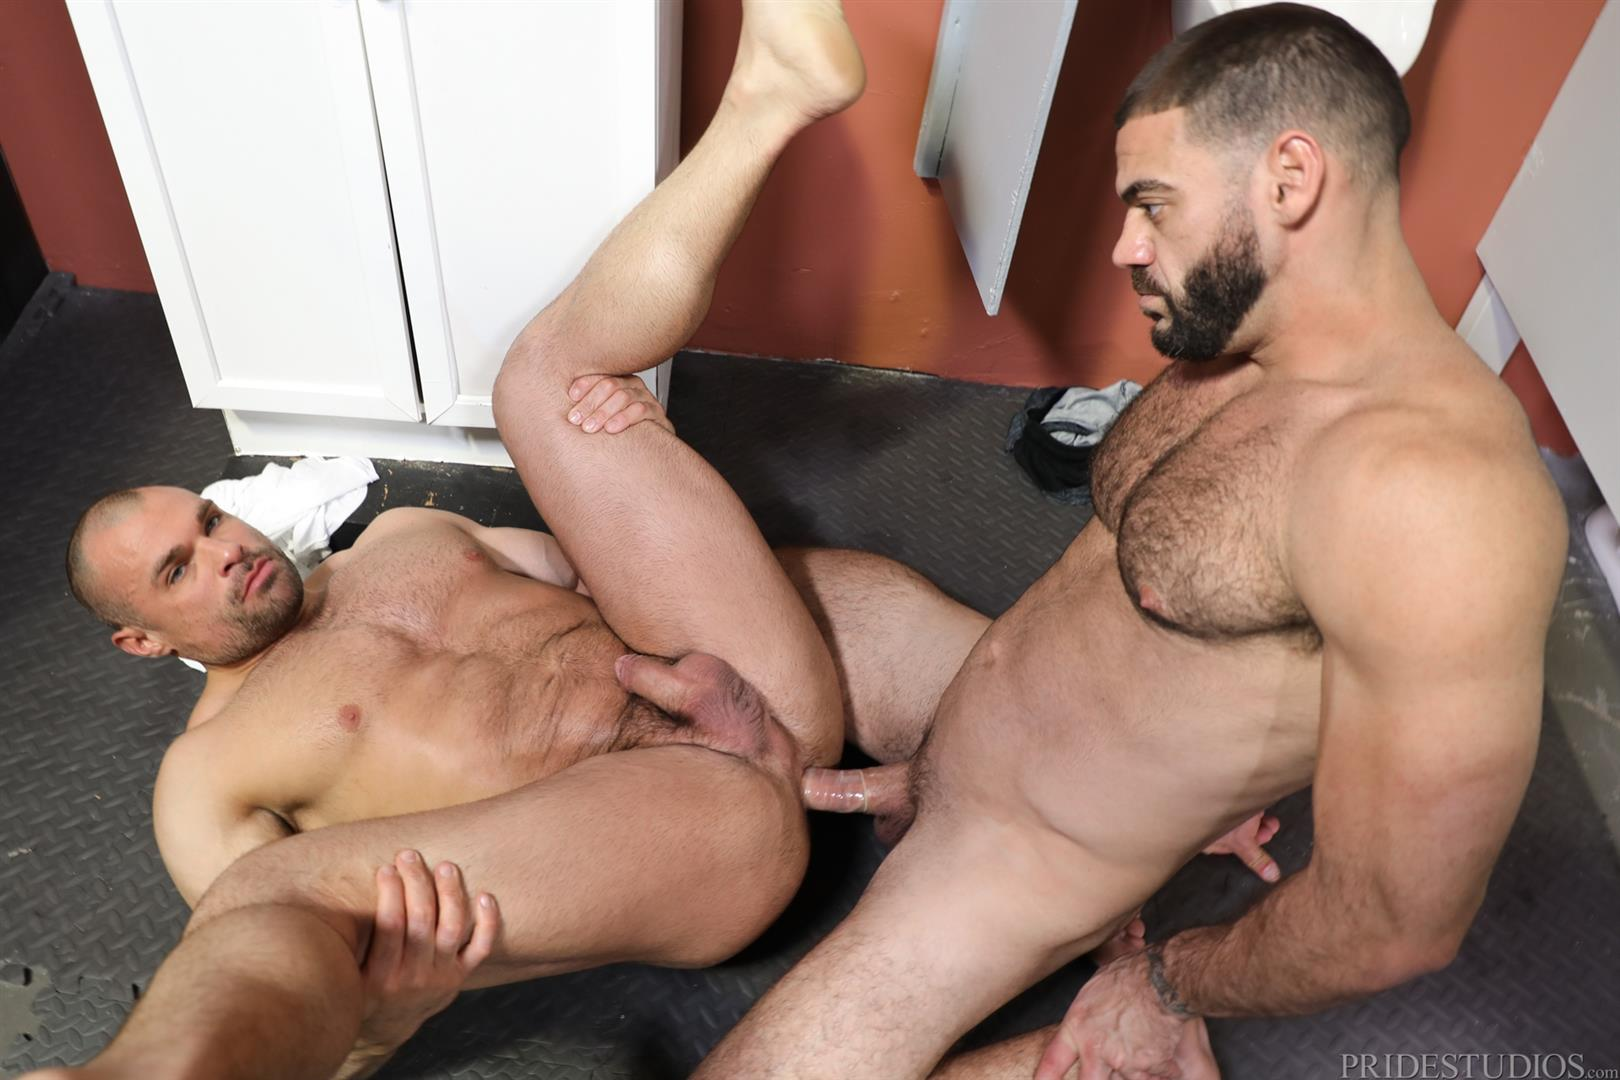 Men-Over-30-Ricky-Larkin-and-Jaxx-Thanatos-Sucking-and-Fucking-At-A-Glory-Hole-13 Hairy Muscle Hunk Jaxx Thanatos Sucks Cock And Gets His Ass Fucked Through A Glory Hole